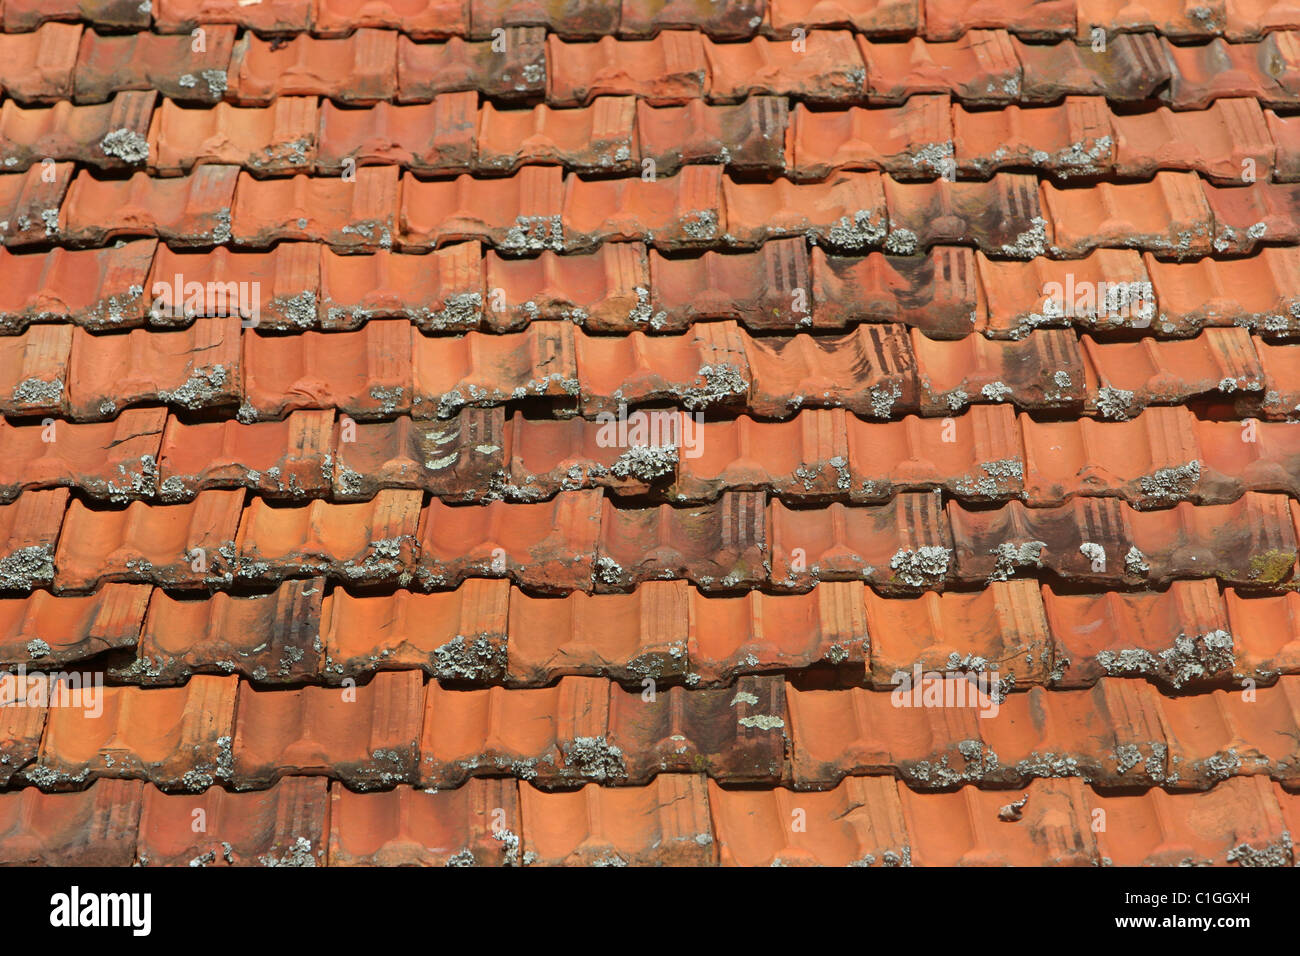 Clay roof tile stock photos clay roof tile stock images for Roof tile patterns